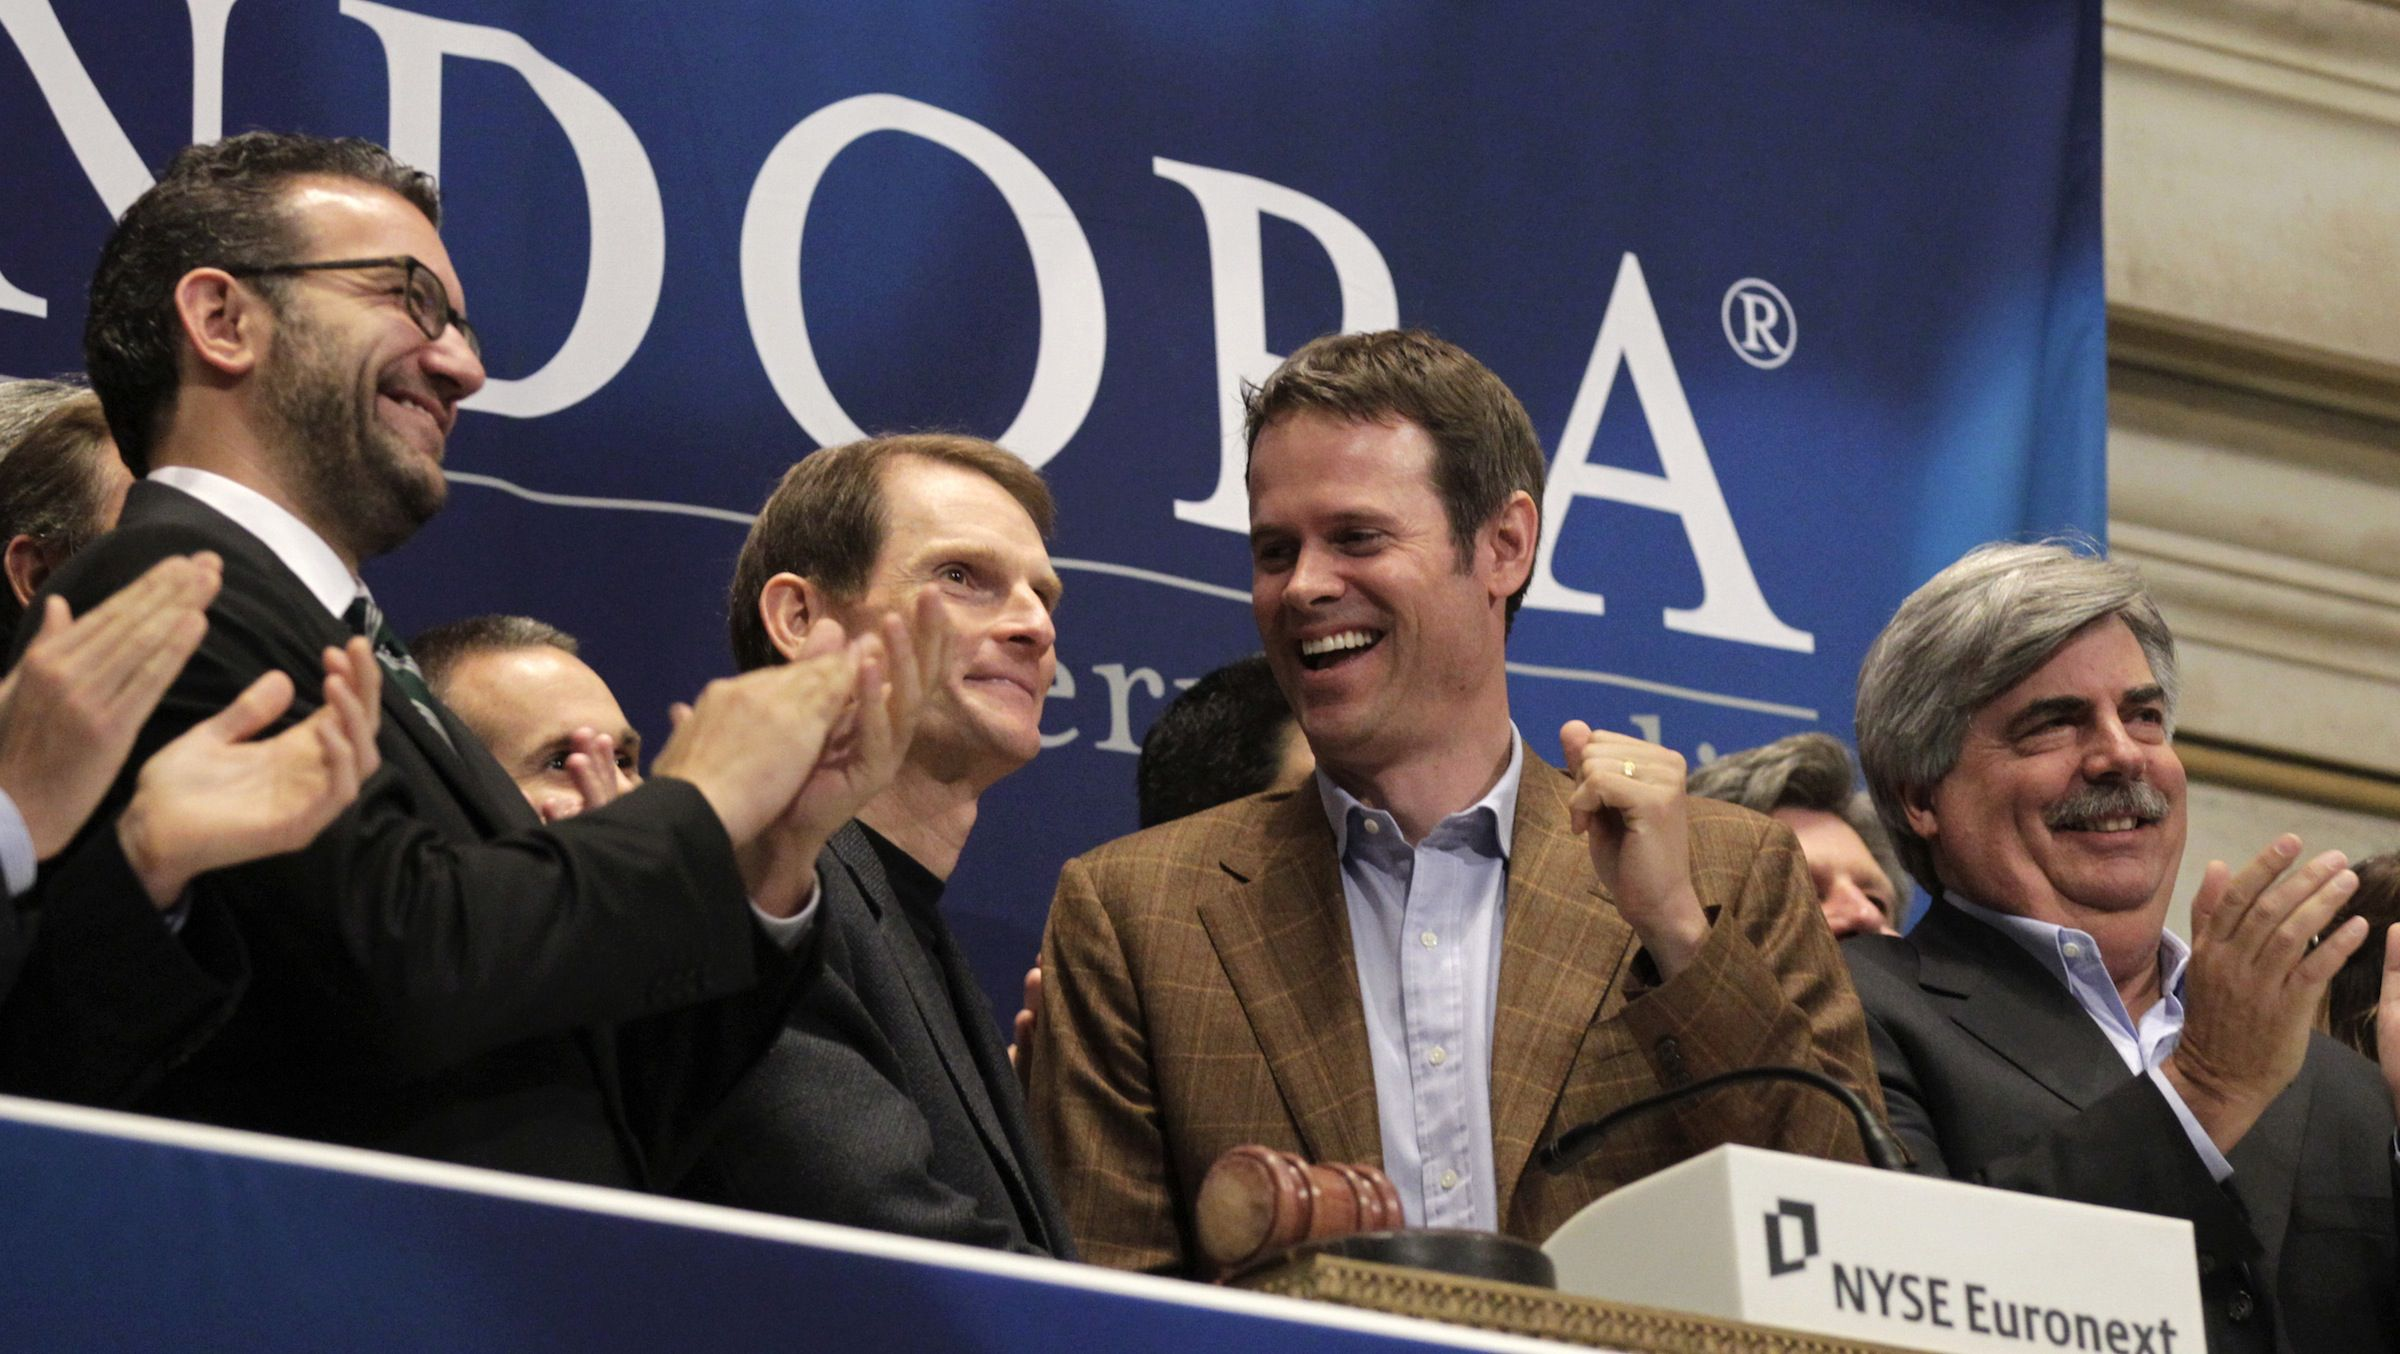 Joe Kennedy (2nd L), president and CEO, and Tim Westergren (2nd R), founder and Chief Strategy Officer of Pandora internet radio, ring the opening bell at the New York Stock Exchange June 15, 2011.  REUTERS/Brendan McDermid (UNITED STATES - Tags: BUSINESS SCI TECH) - RTR2NOZJ